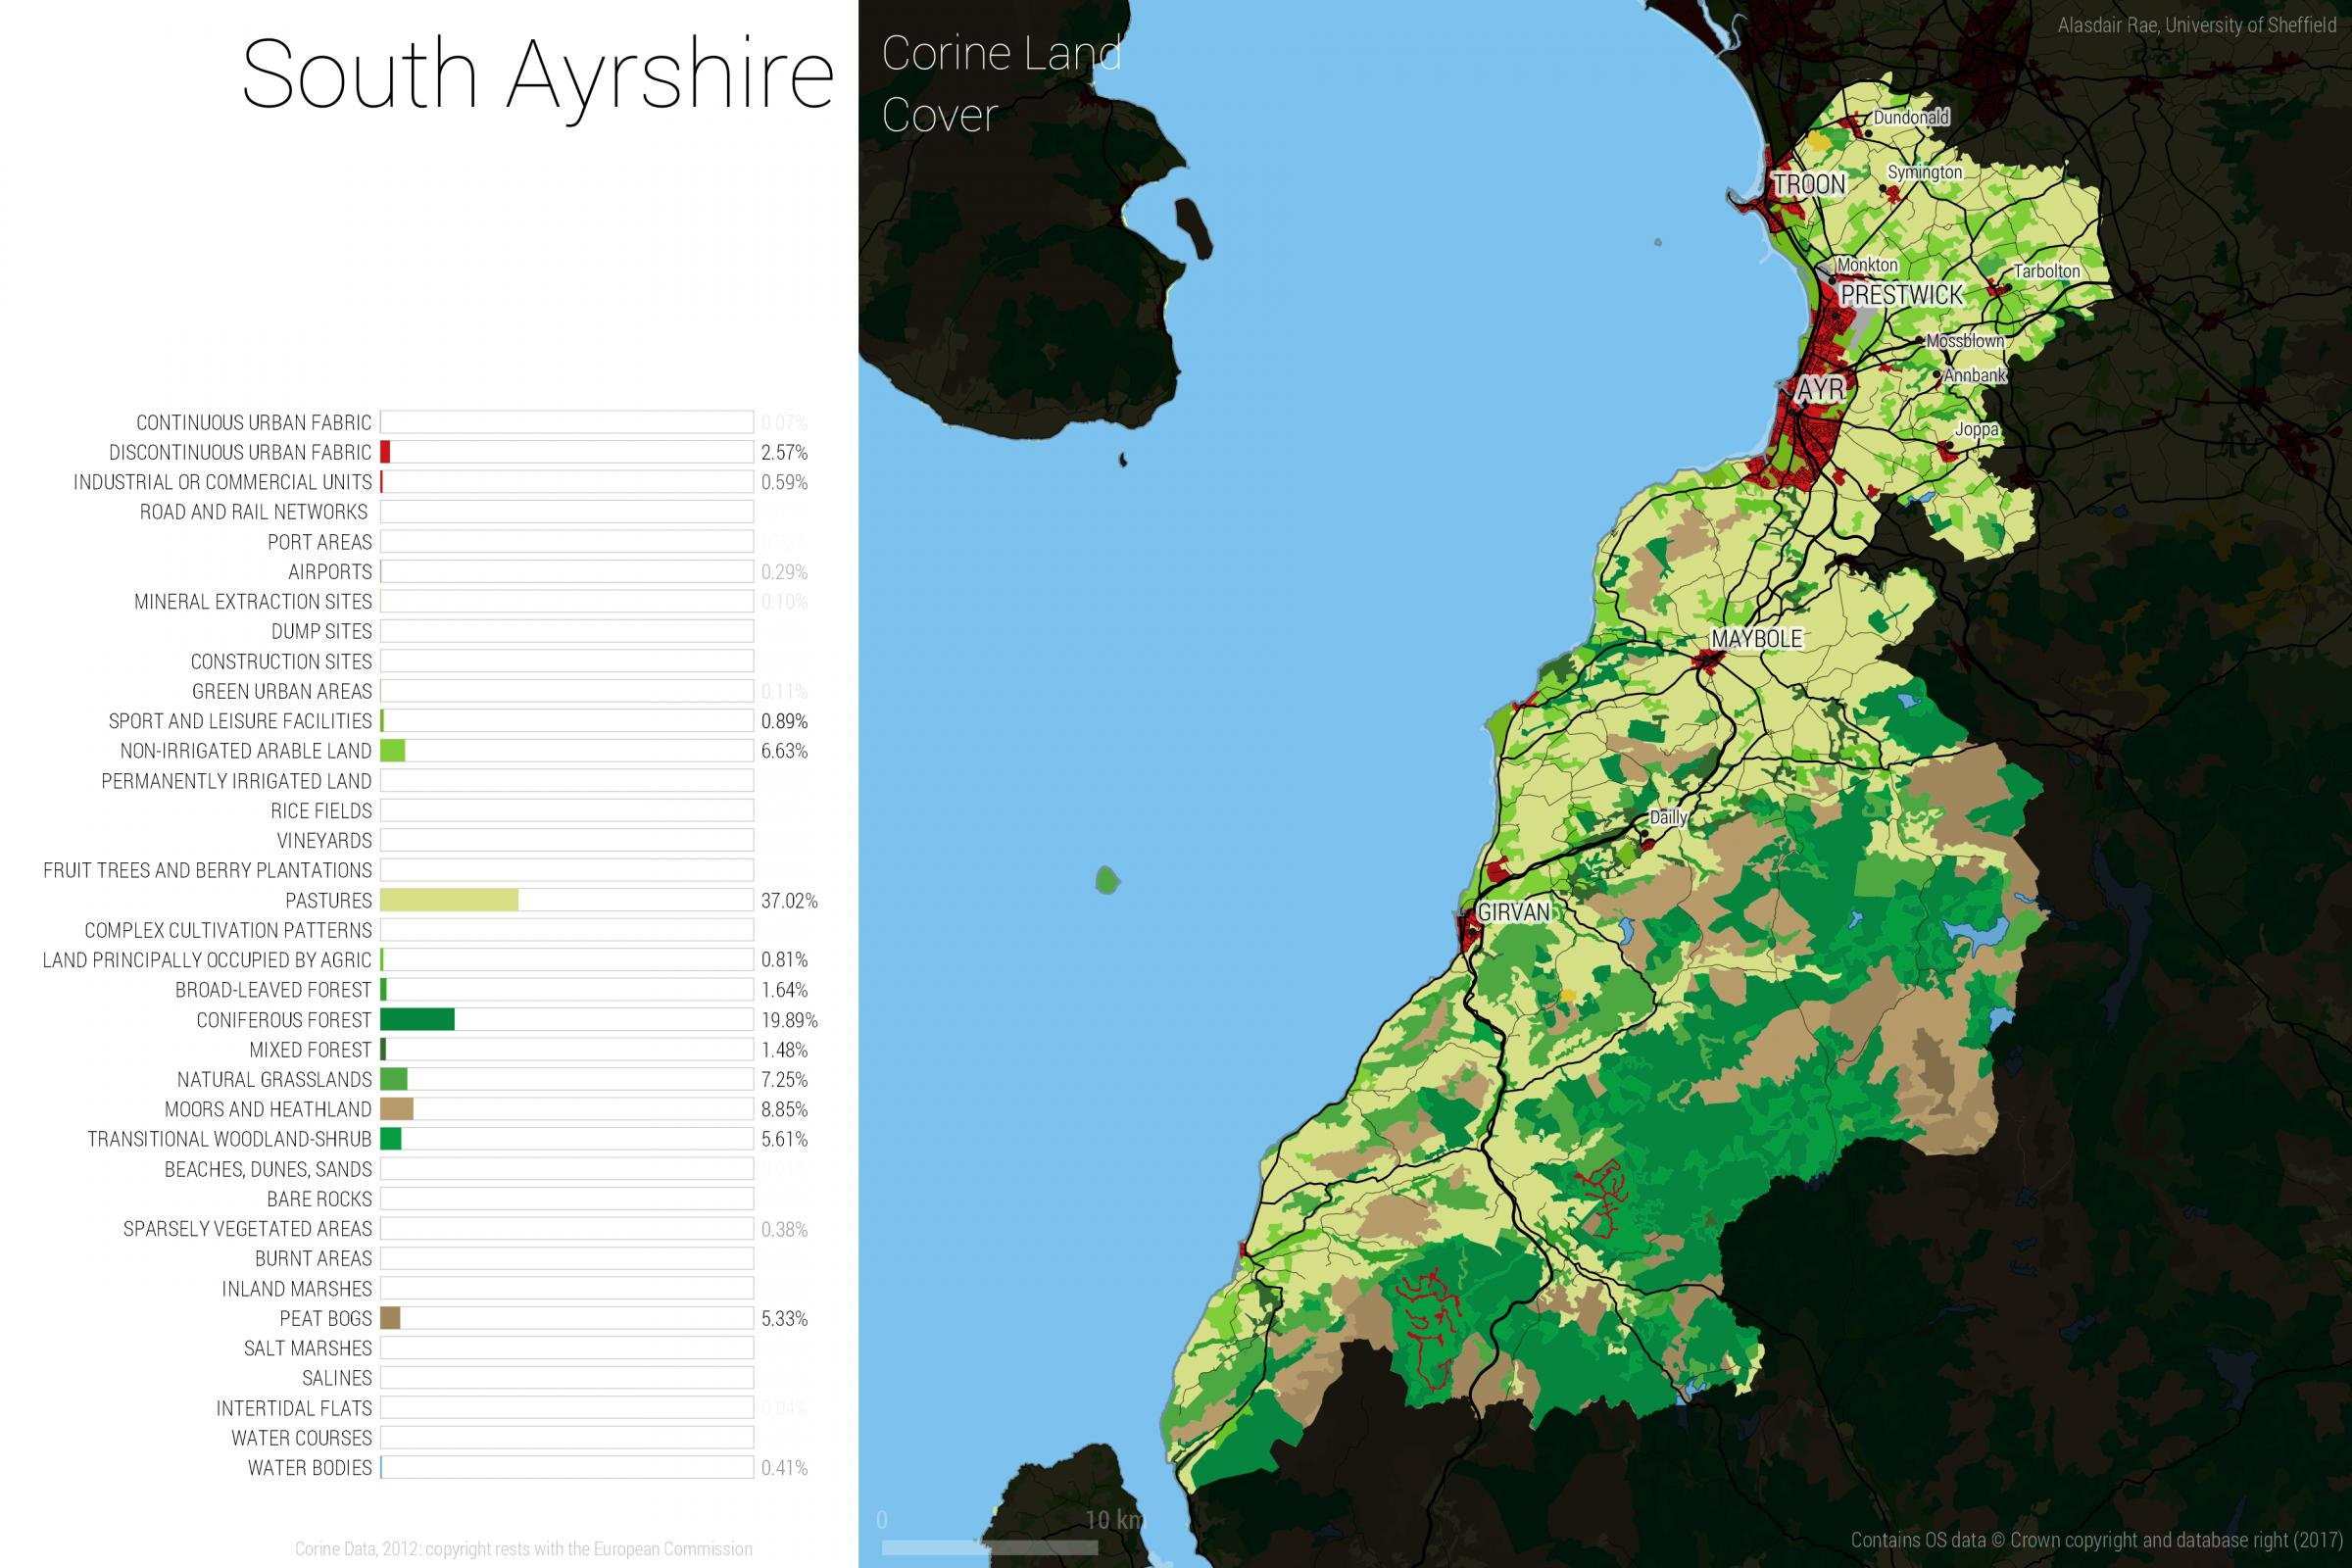 Just three percentage of South Ayrshire is built upon